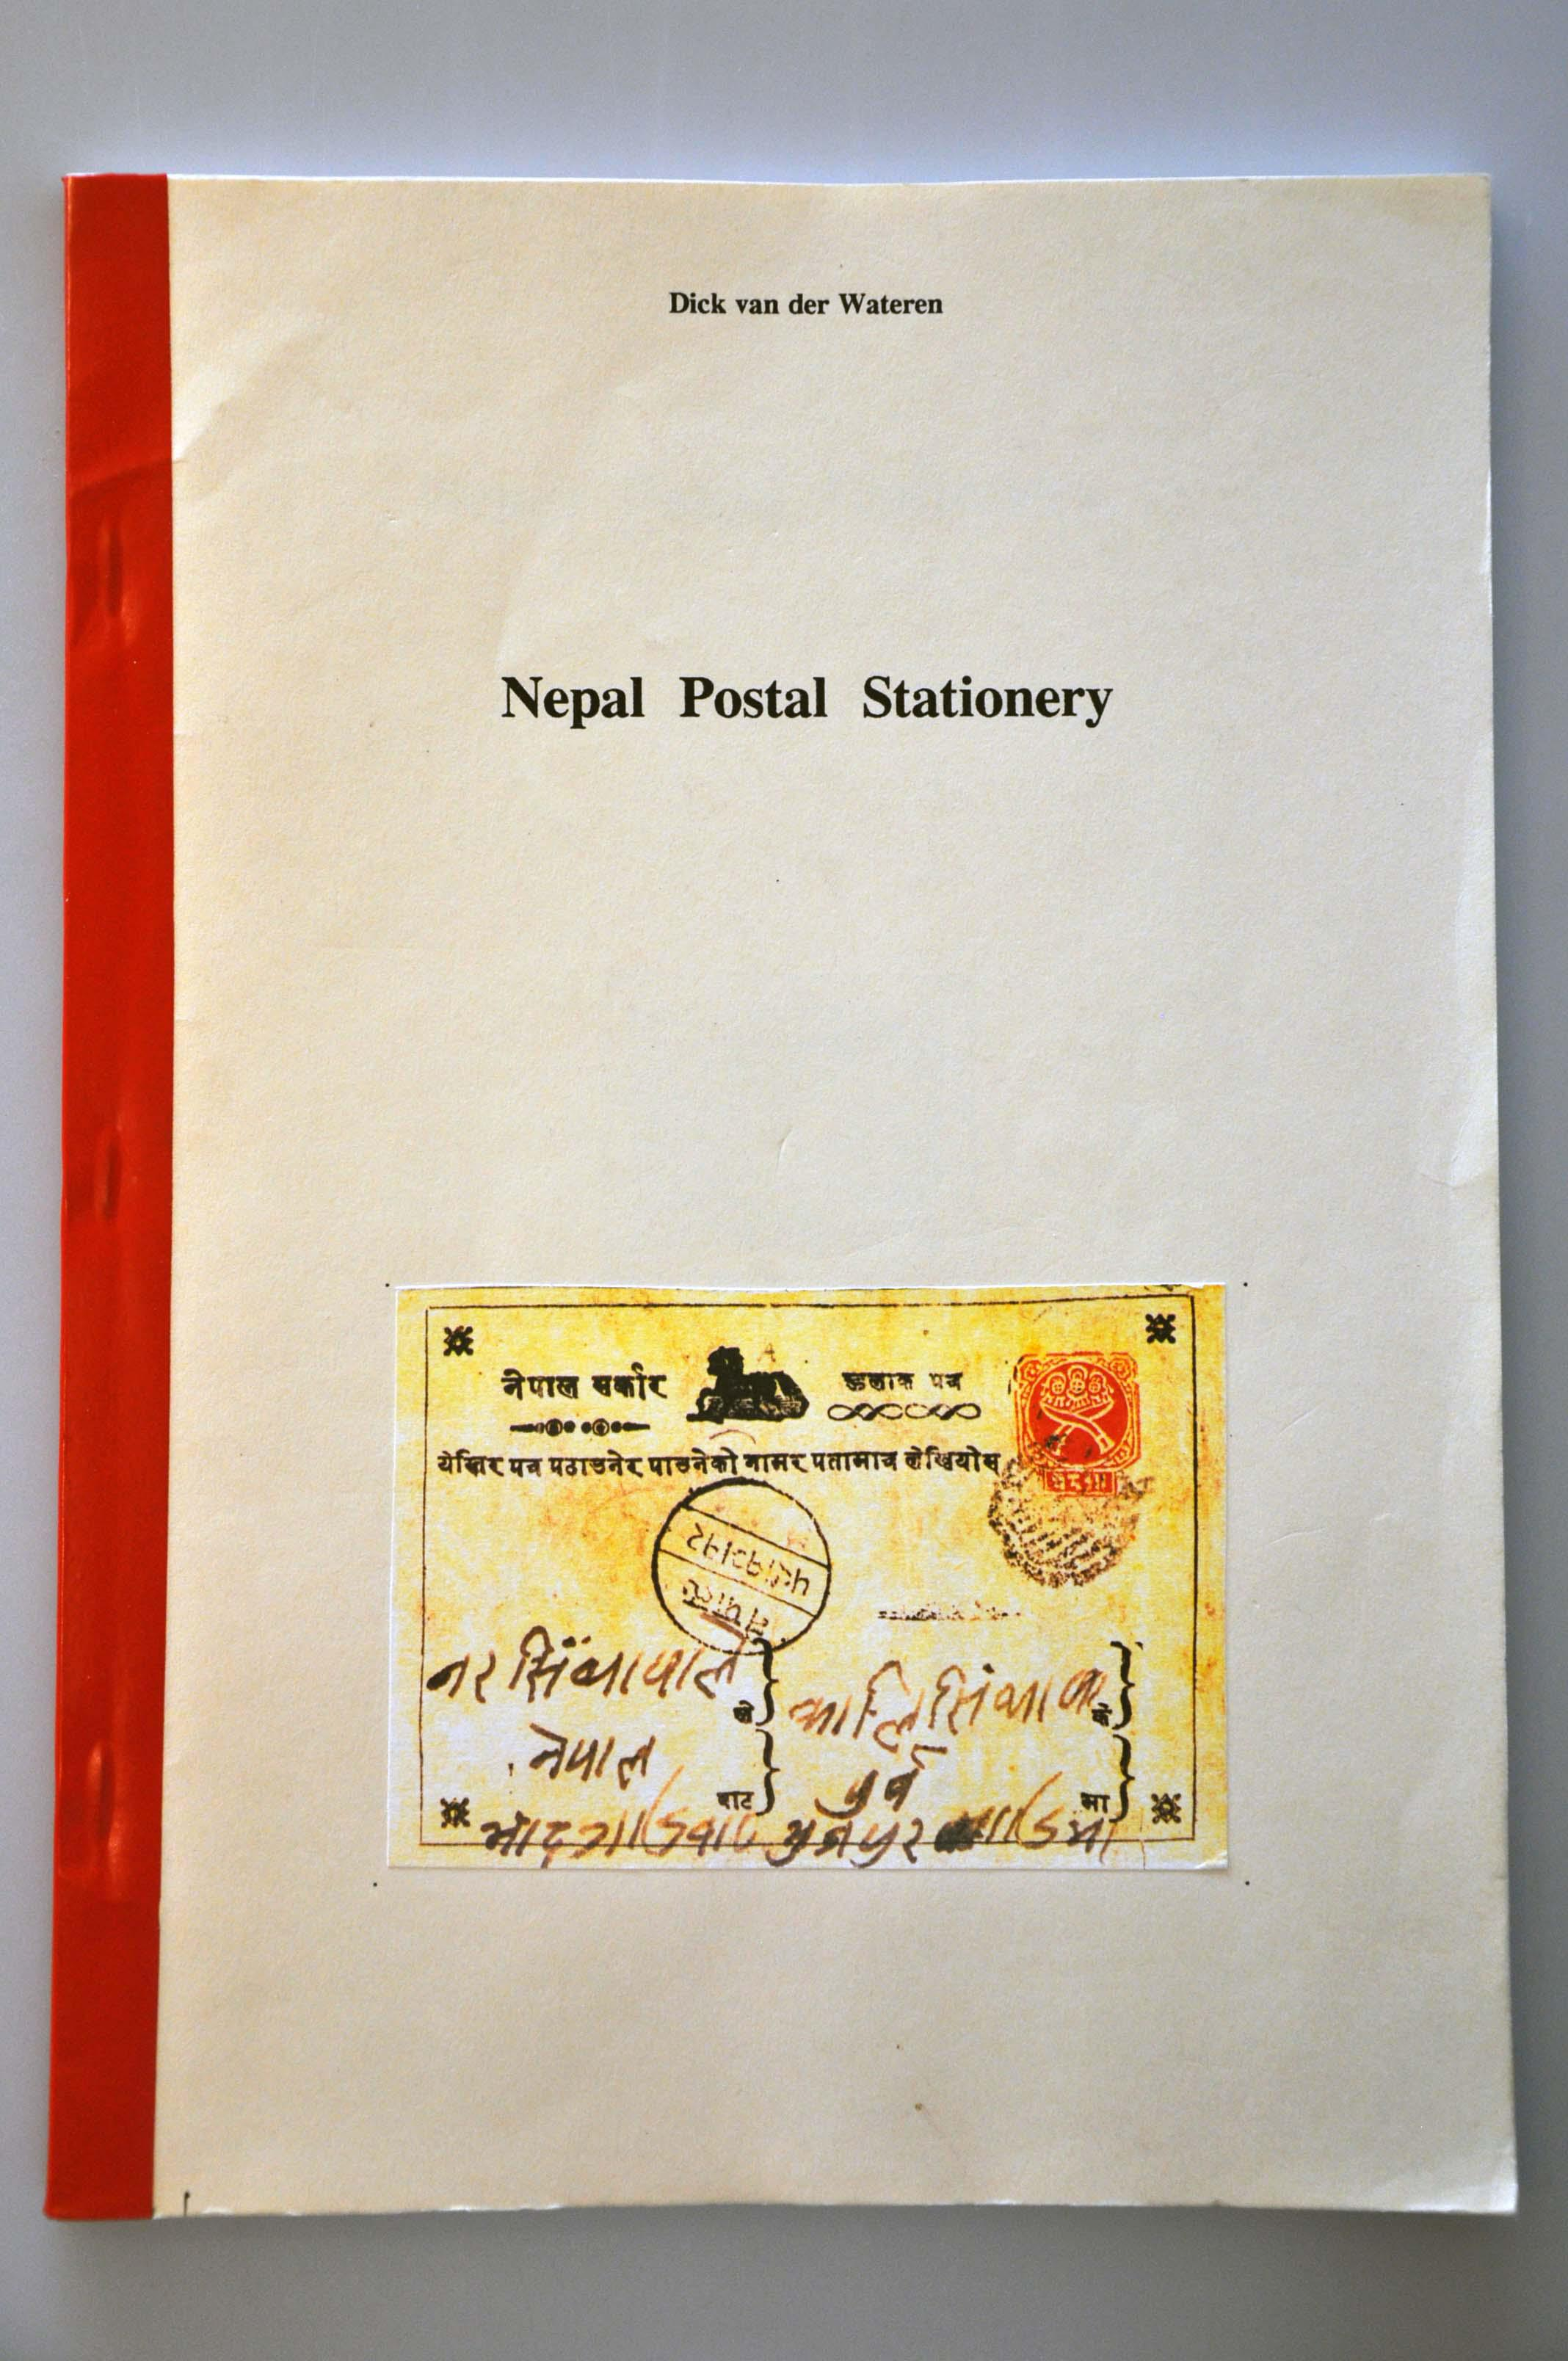 Lot 110 - Great Britain and former colonies Nepal -  Corinphila Veilingen Auction 245-246 Day 1 - Nepal - The Dick van der Wateren Collection, Foreign countries - Single lots, Picture postcards